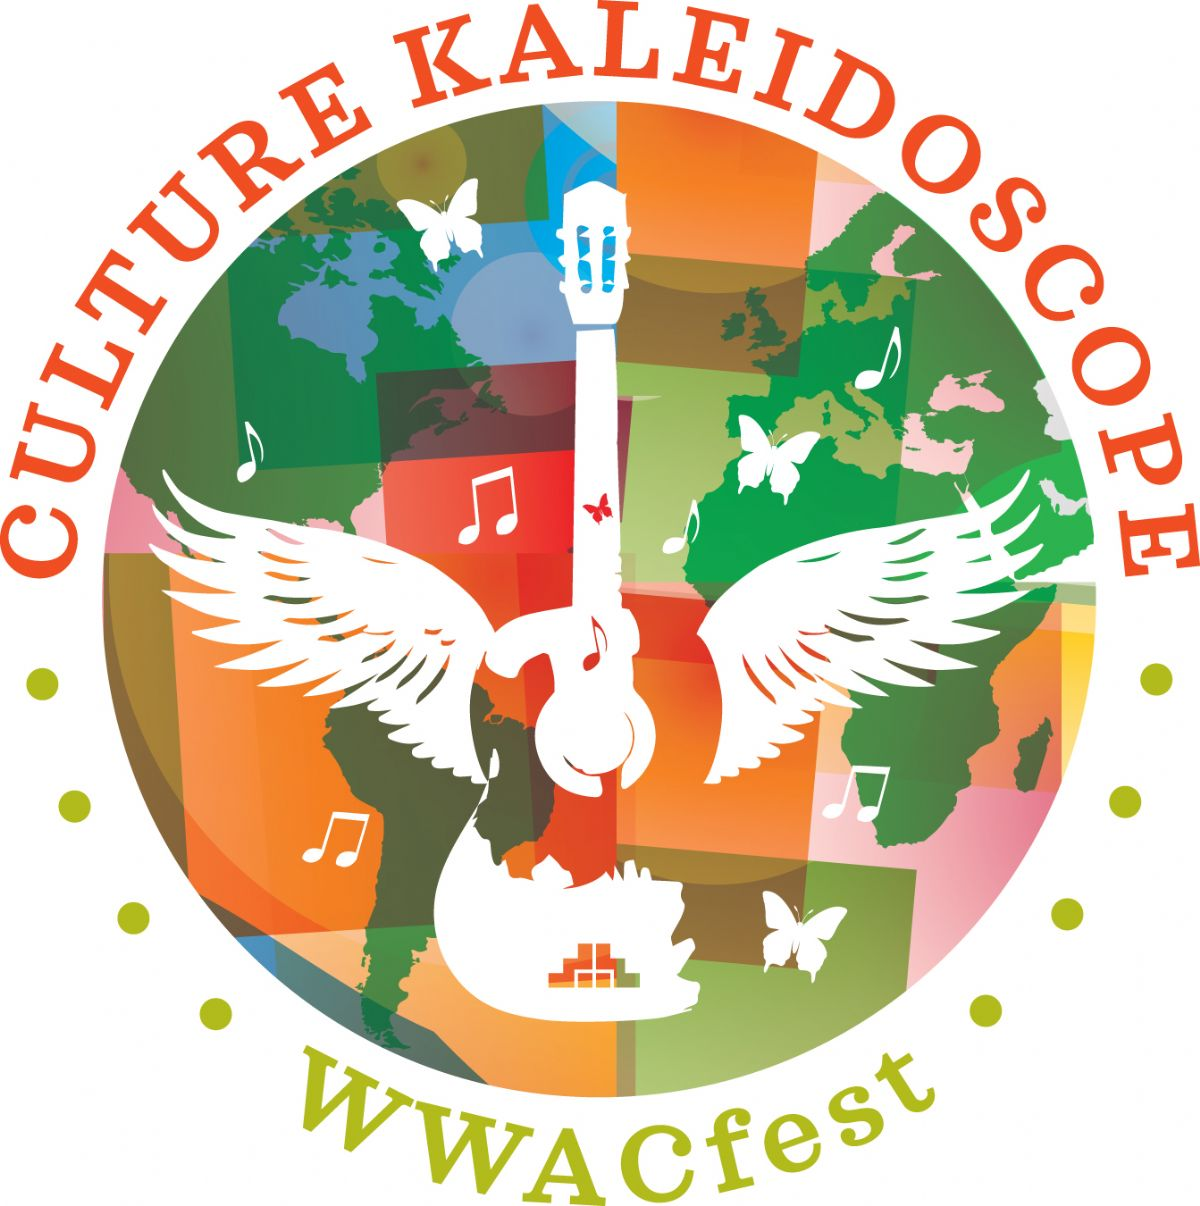 WwacFest: Culture Kaleidoscope Music and Performance Festival